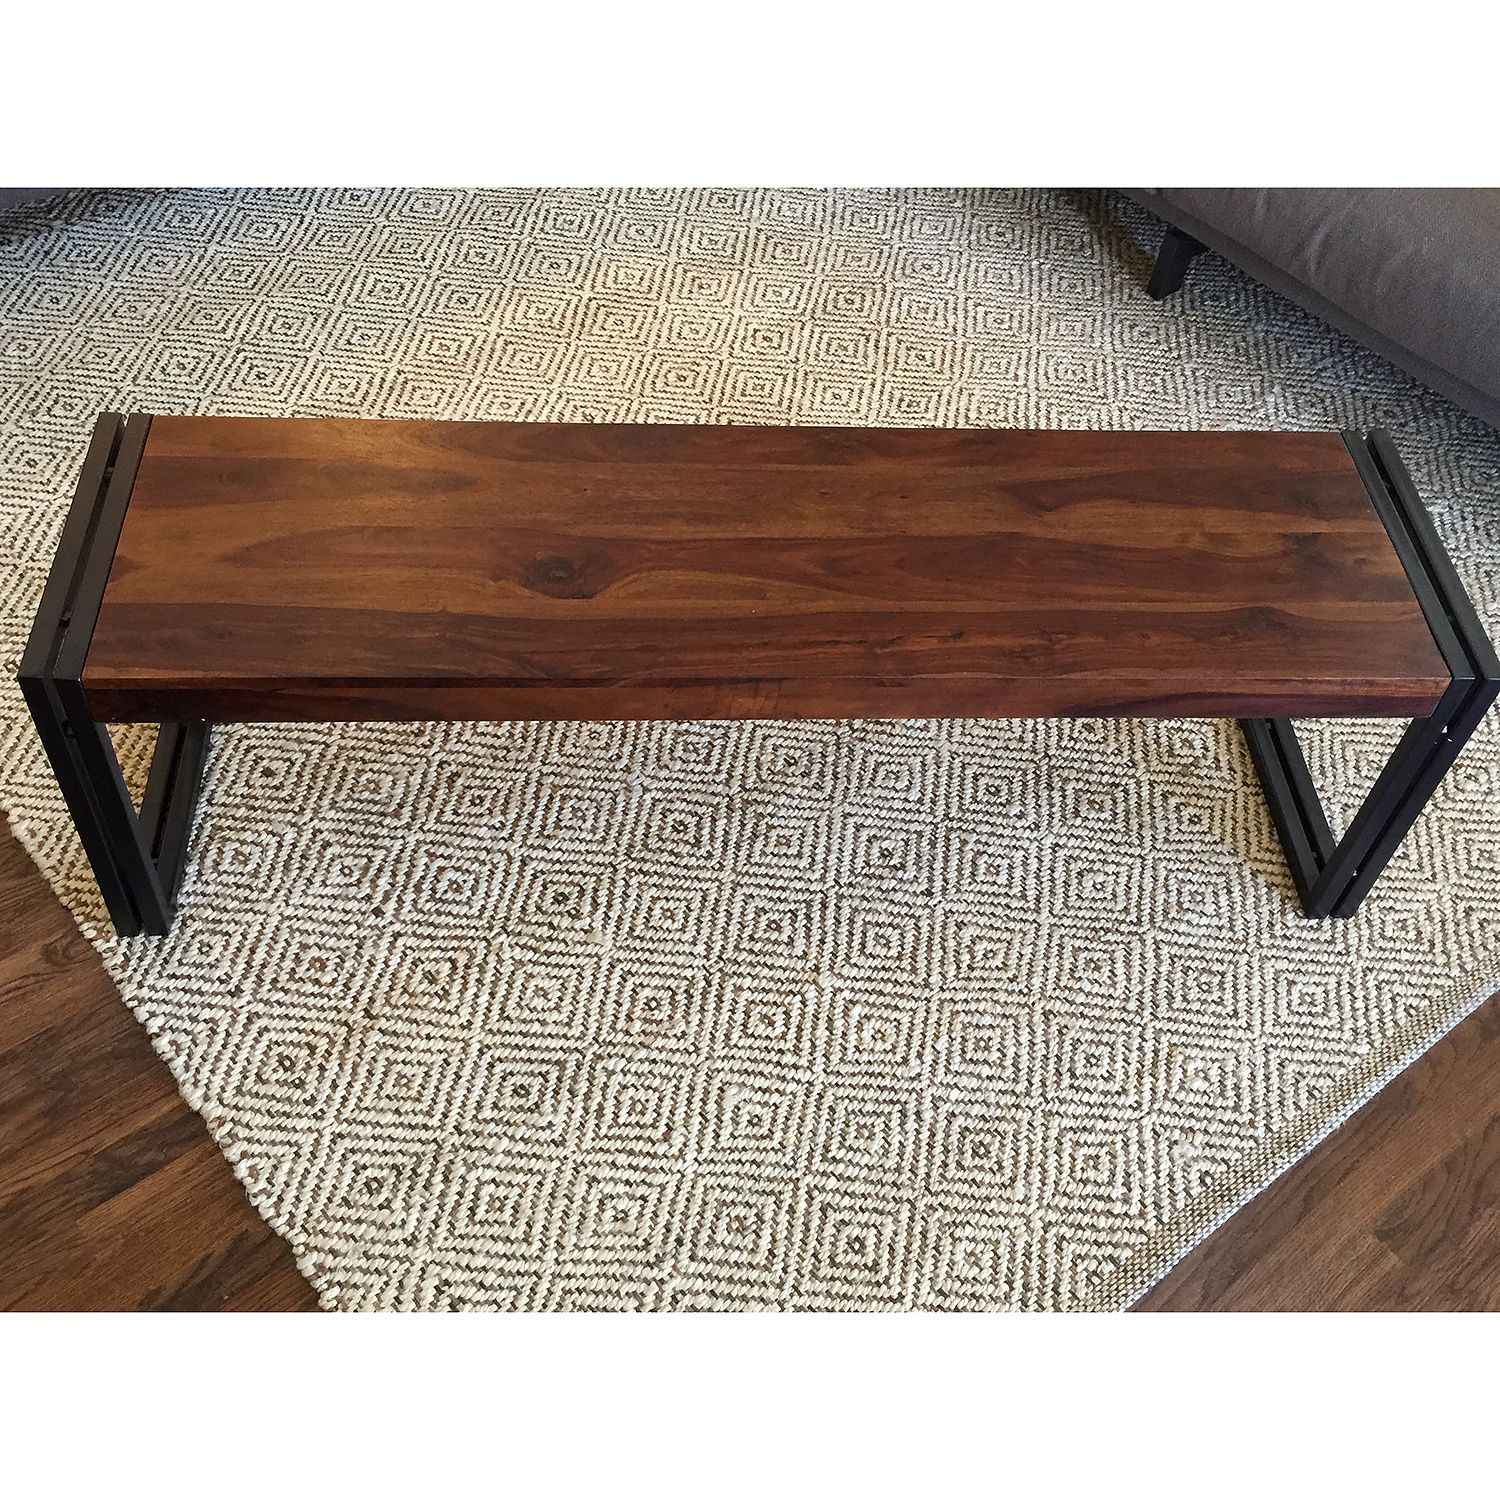 Reclaimed Seesham Wood Bench with Metal Legs India